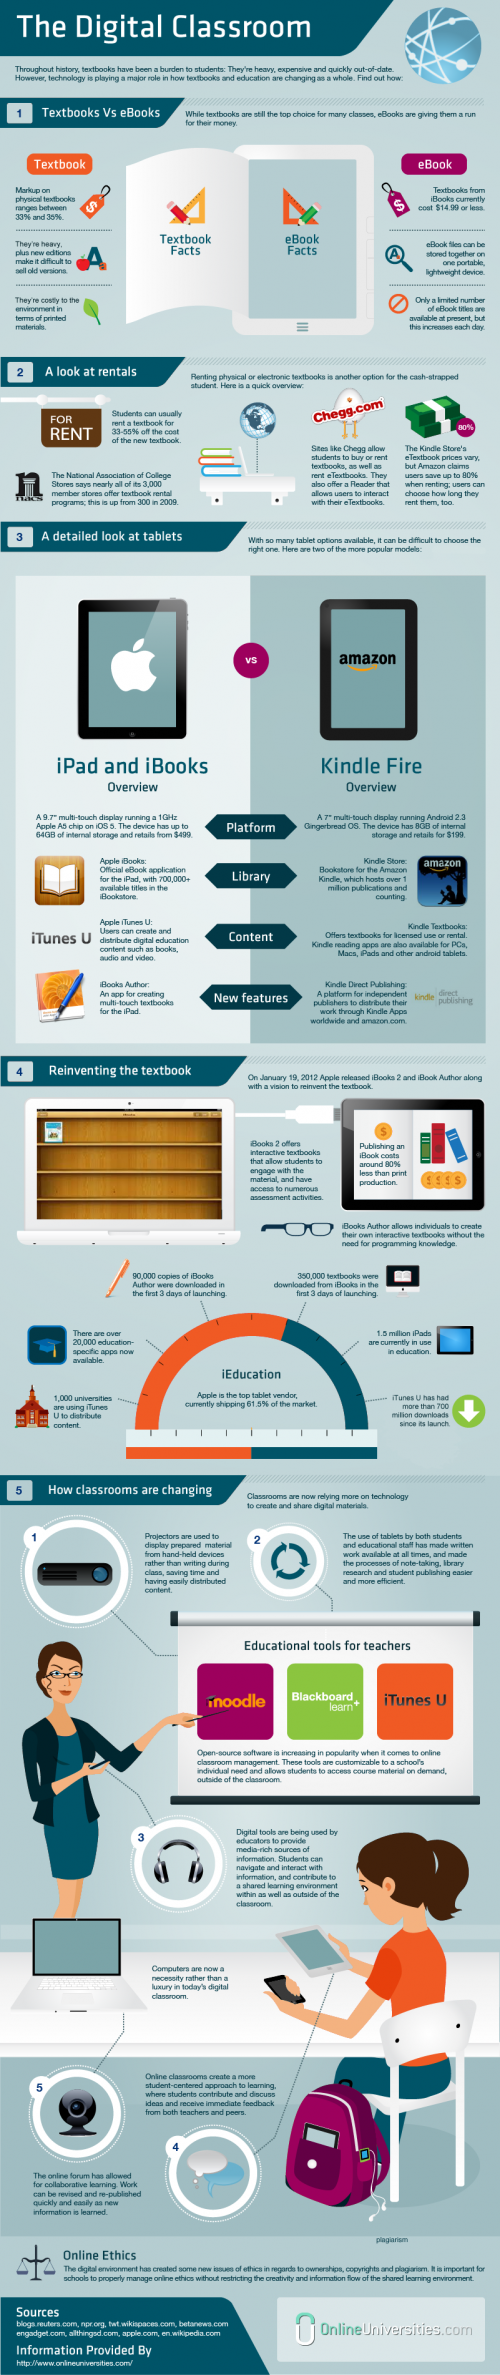 classroom technology infographic